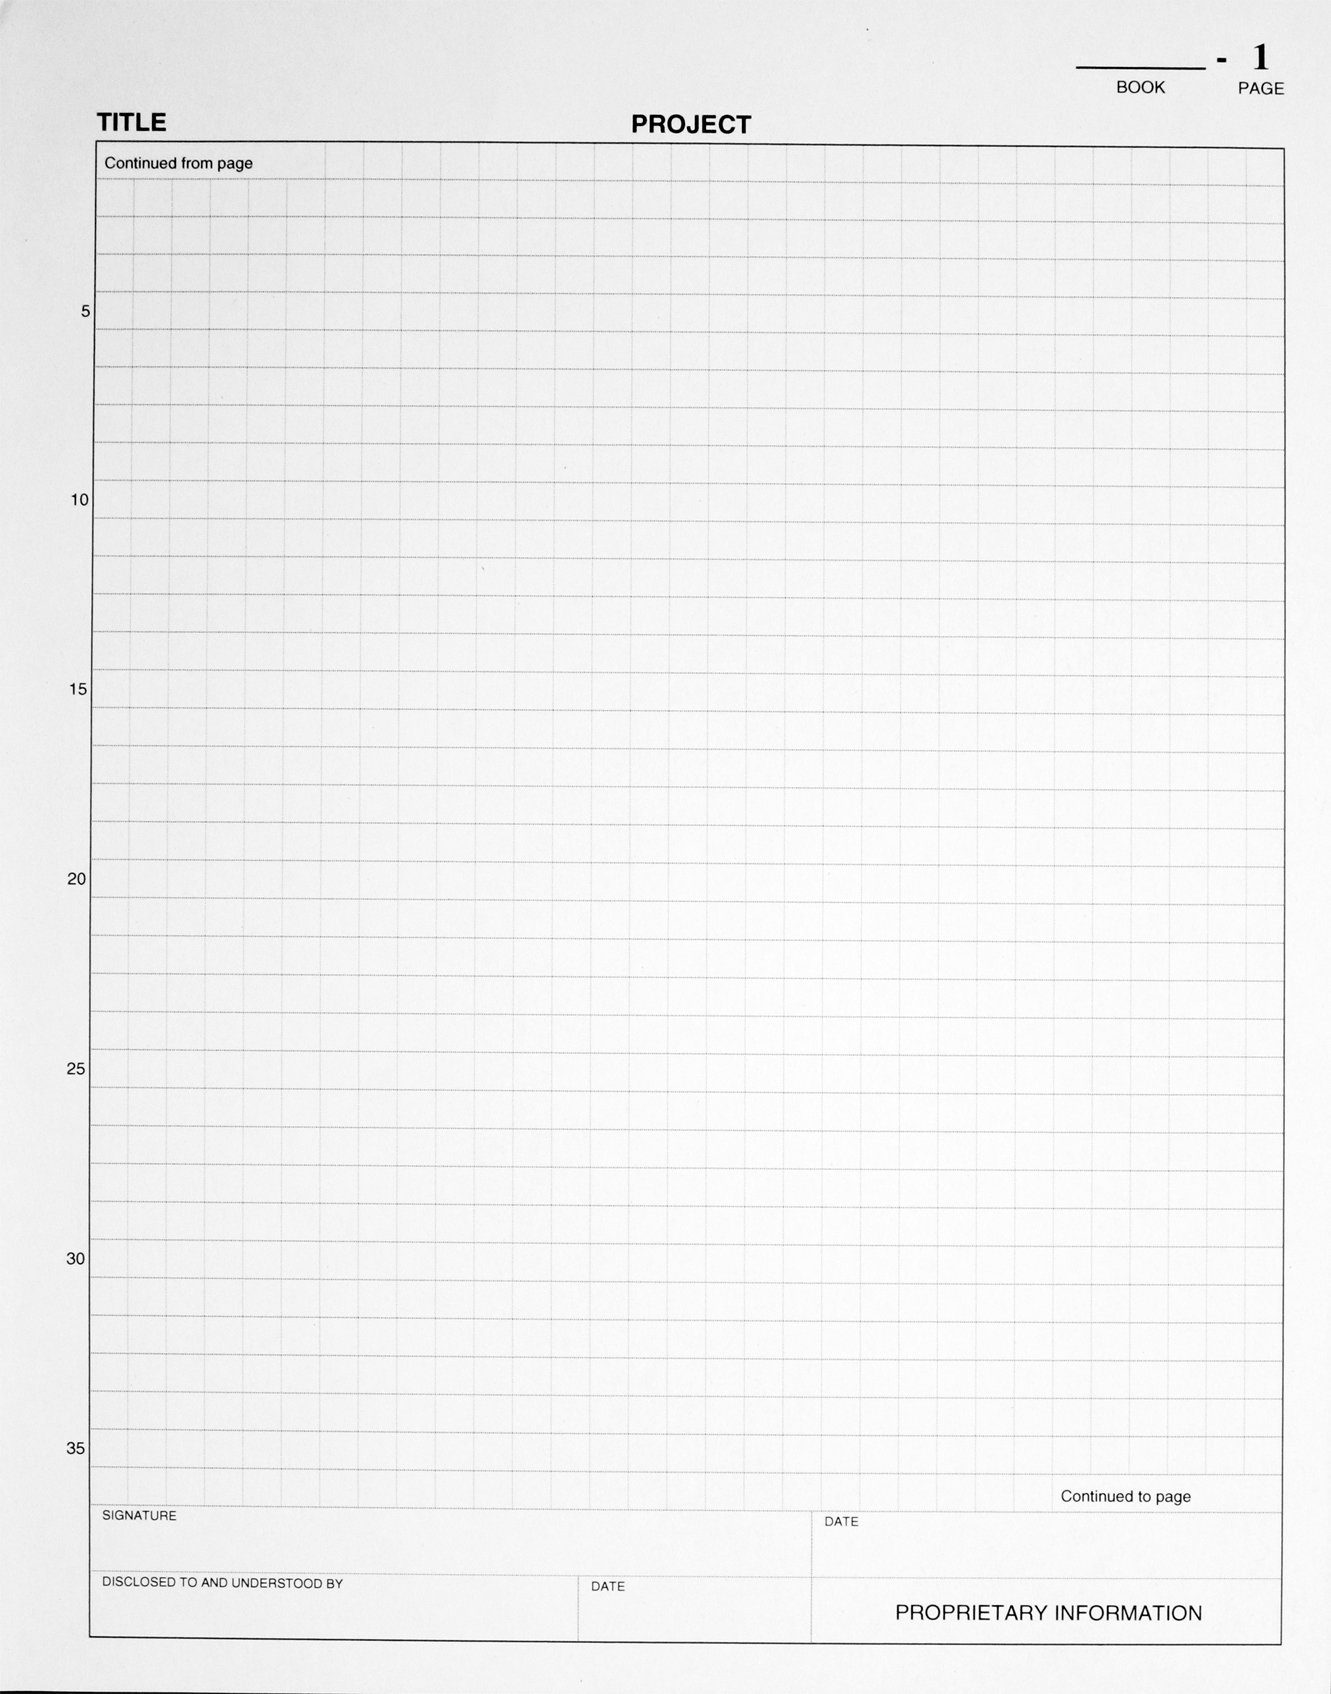 BookFactory Black Research Notebook - 312 Pages (.25'' Grid Format), 8'' x 10'', Black Cover, Smyth Sewn Hardbound (LIRPE-312-SGR-A-LKT6)